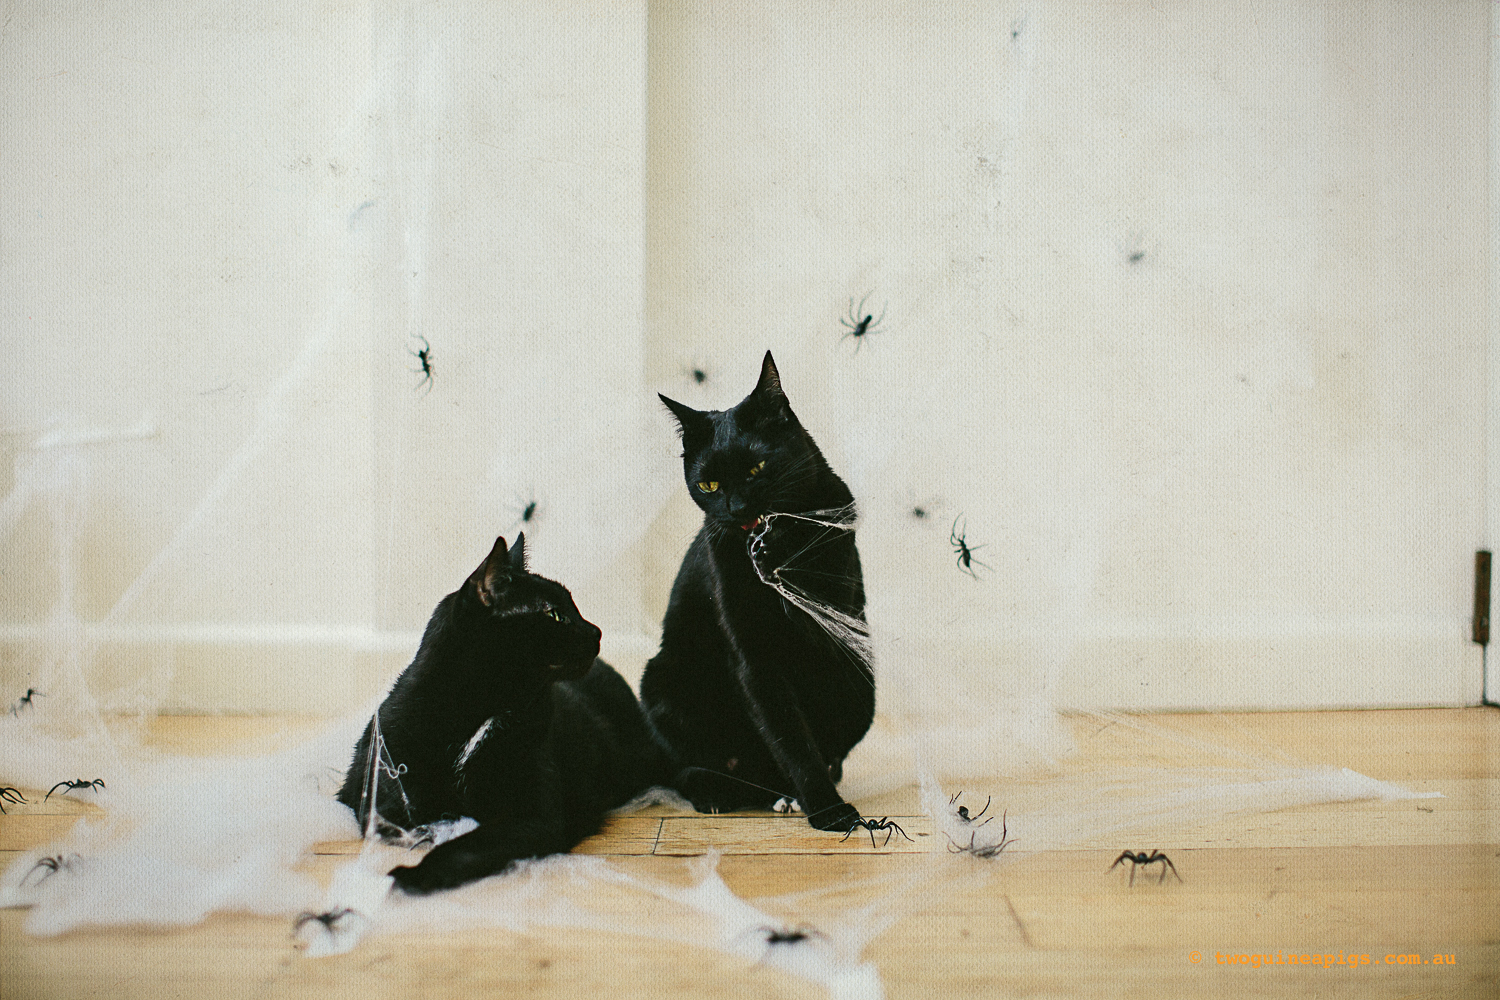 twoguinepaigs_blackcats_halloween_witchshat_1500.jpg